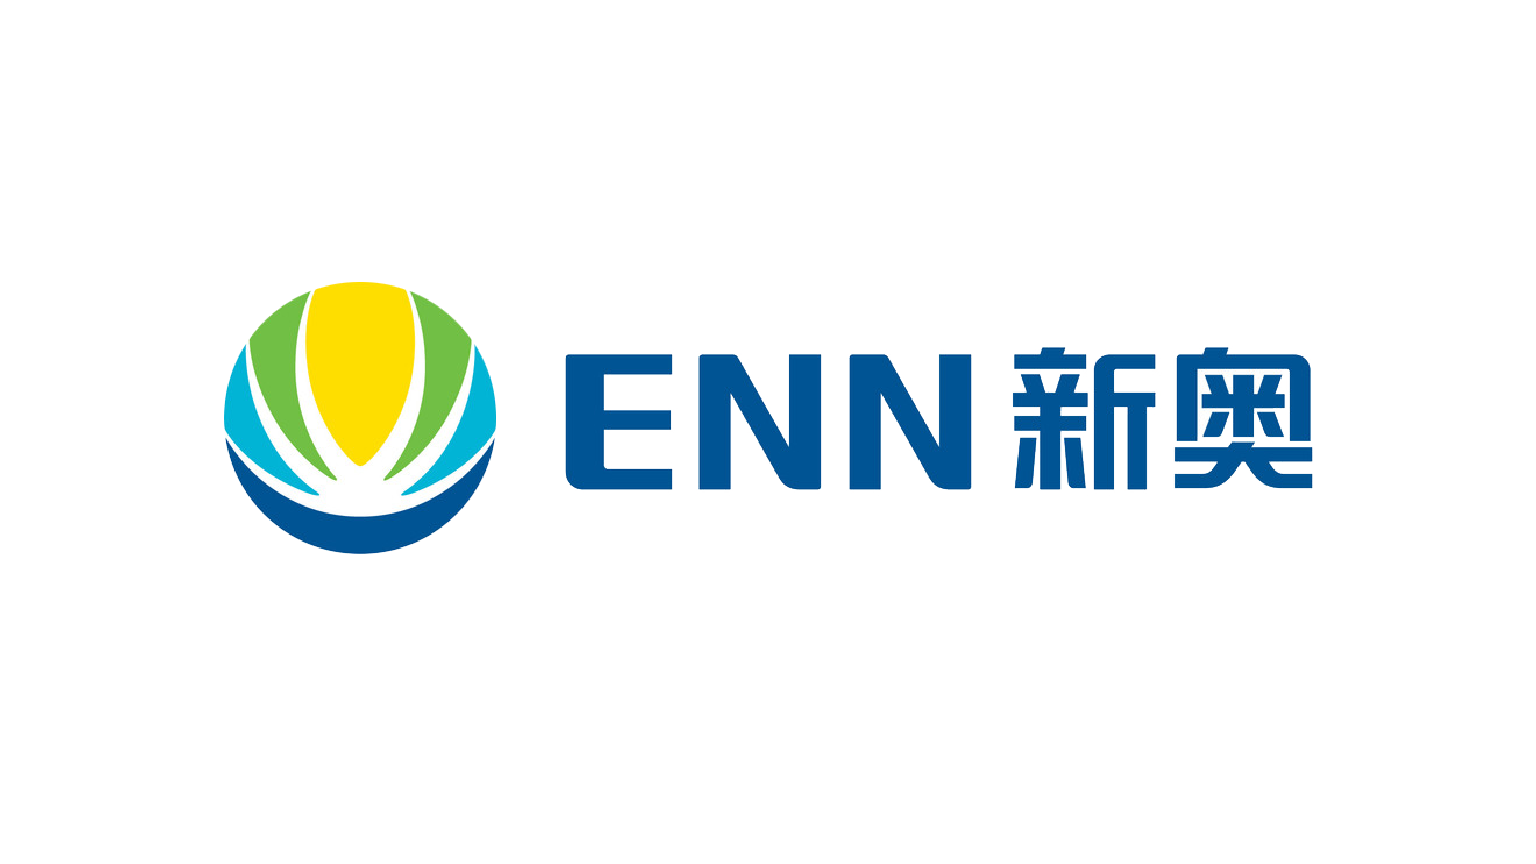 ENN Group logosu